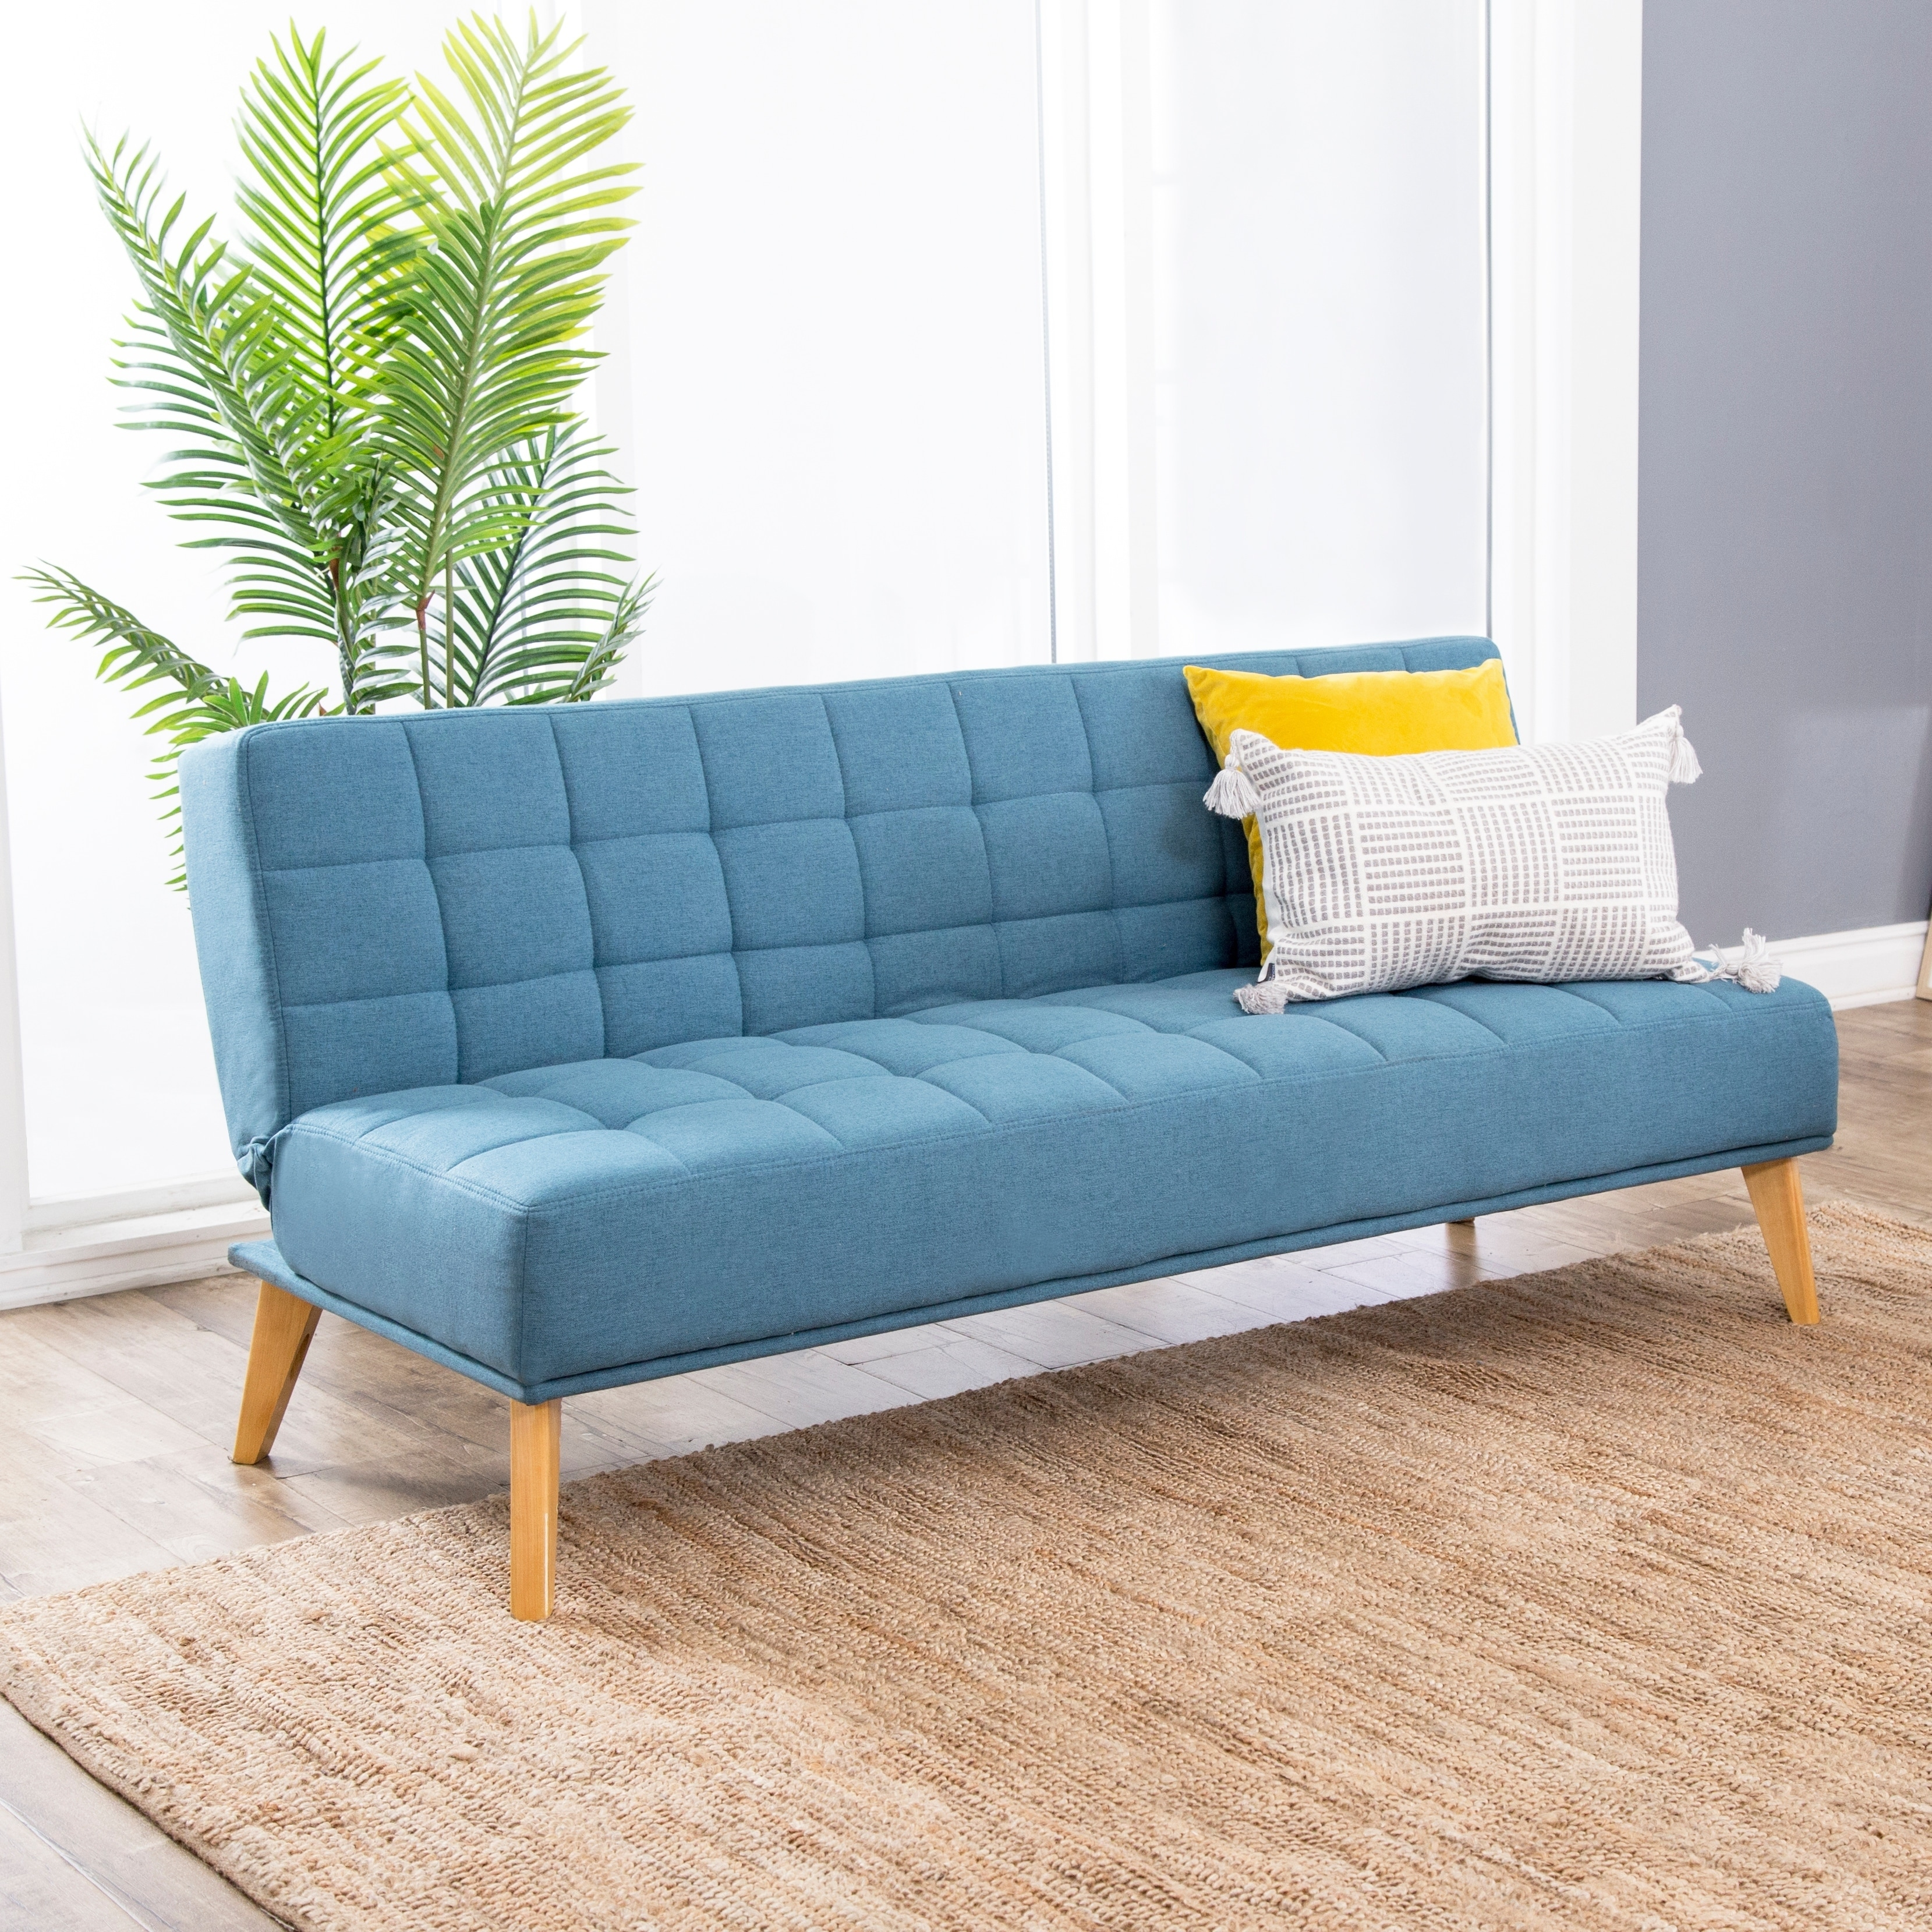 Details about Abbyson Carson Mid Century Tufted Fabric Convertible Sofa  Futon